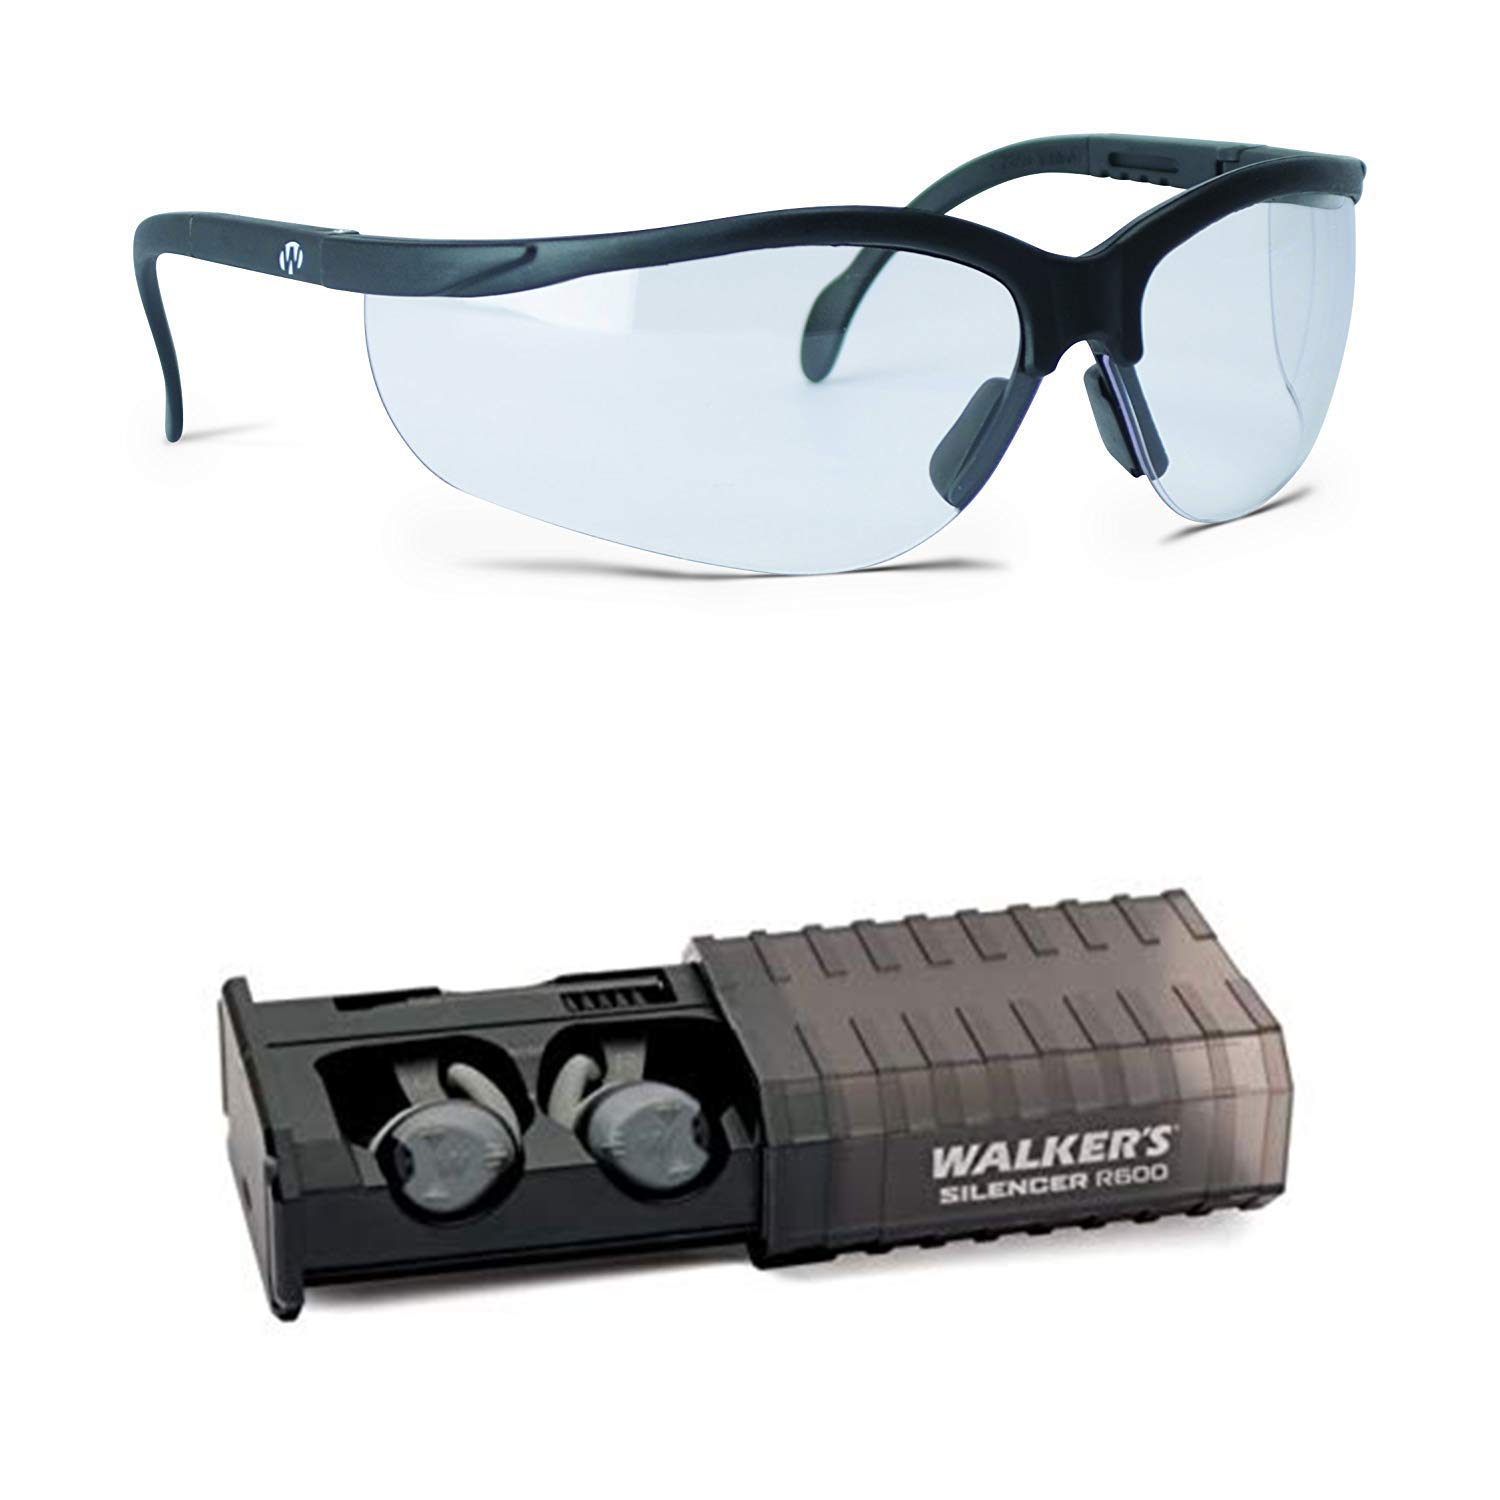 Walker's Game Ear Silencer Earbuds Rechargeable and Clear Lens Shoot Glasses by Walker's Game Ear